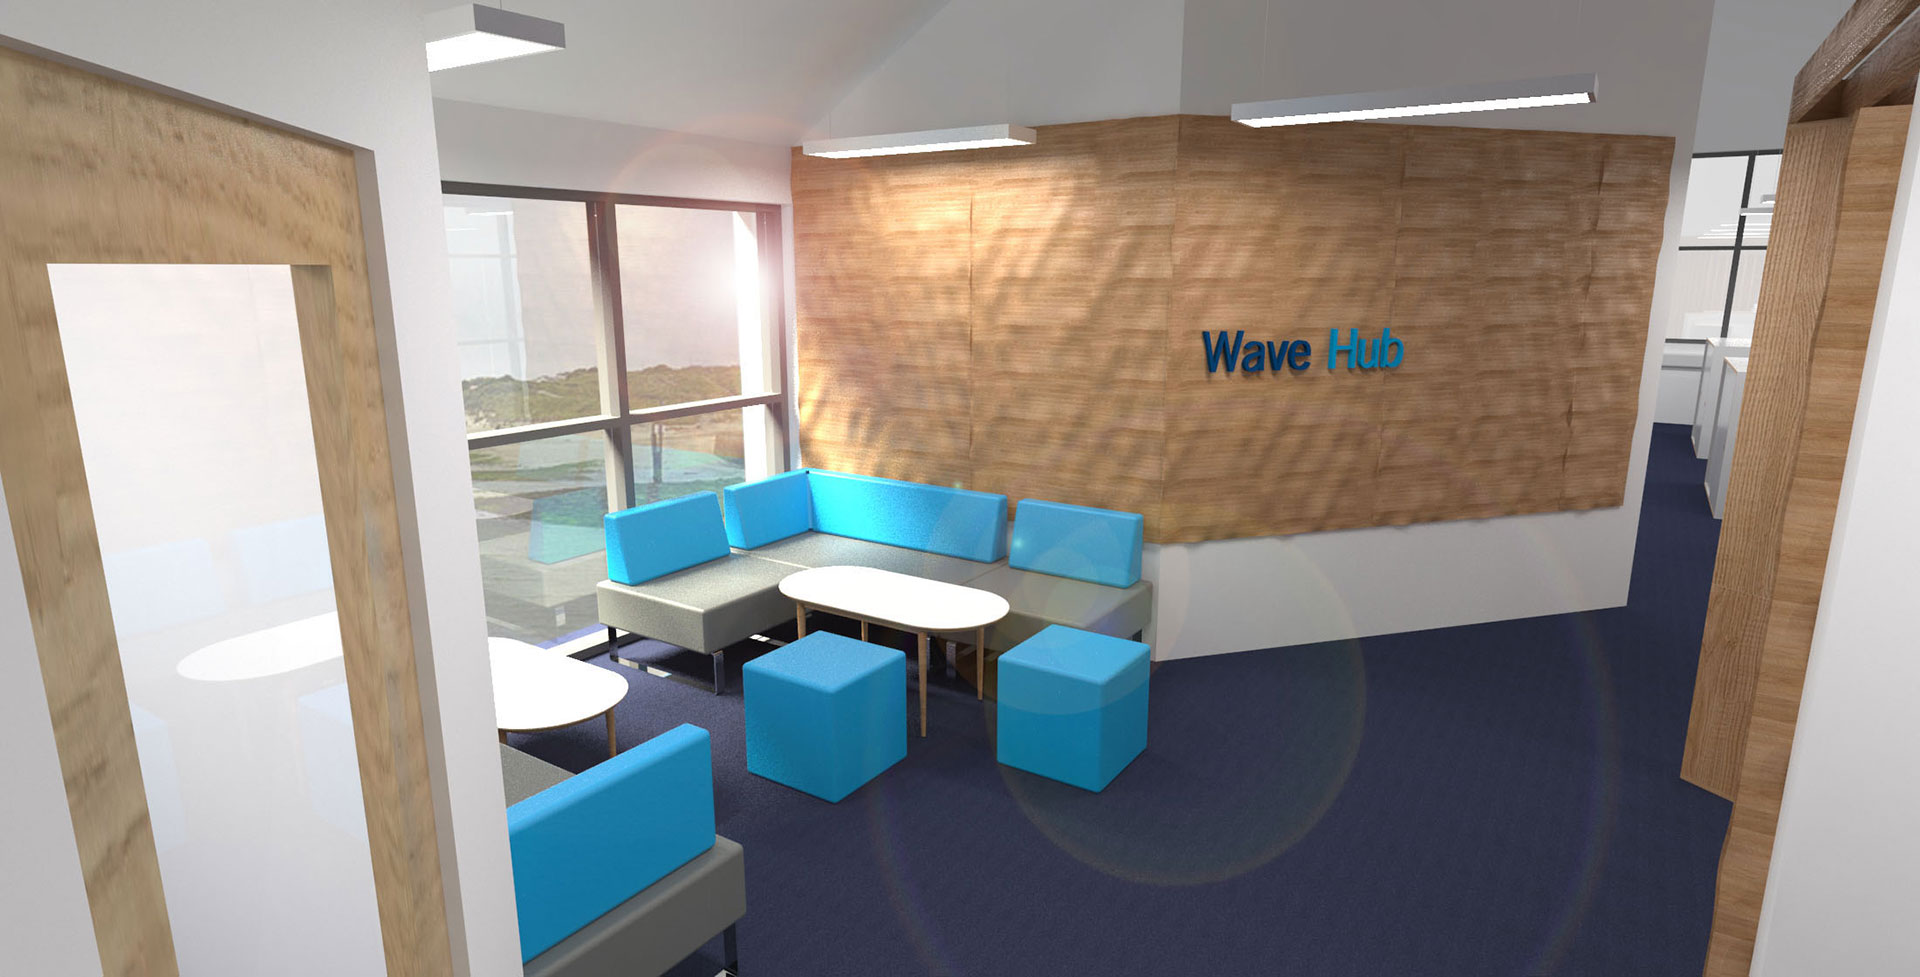 Tactile wave wall panels within office interior